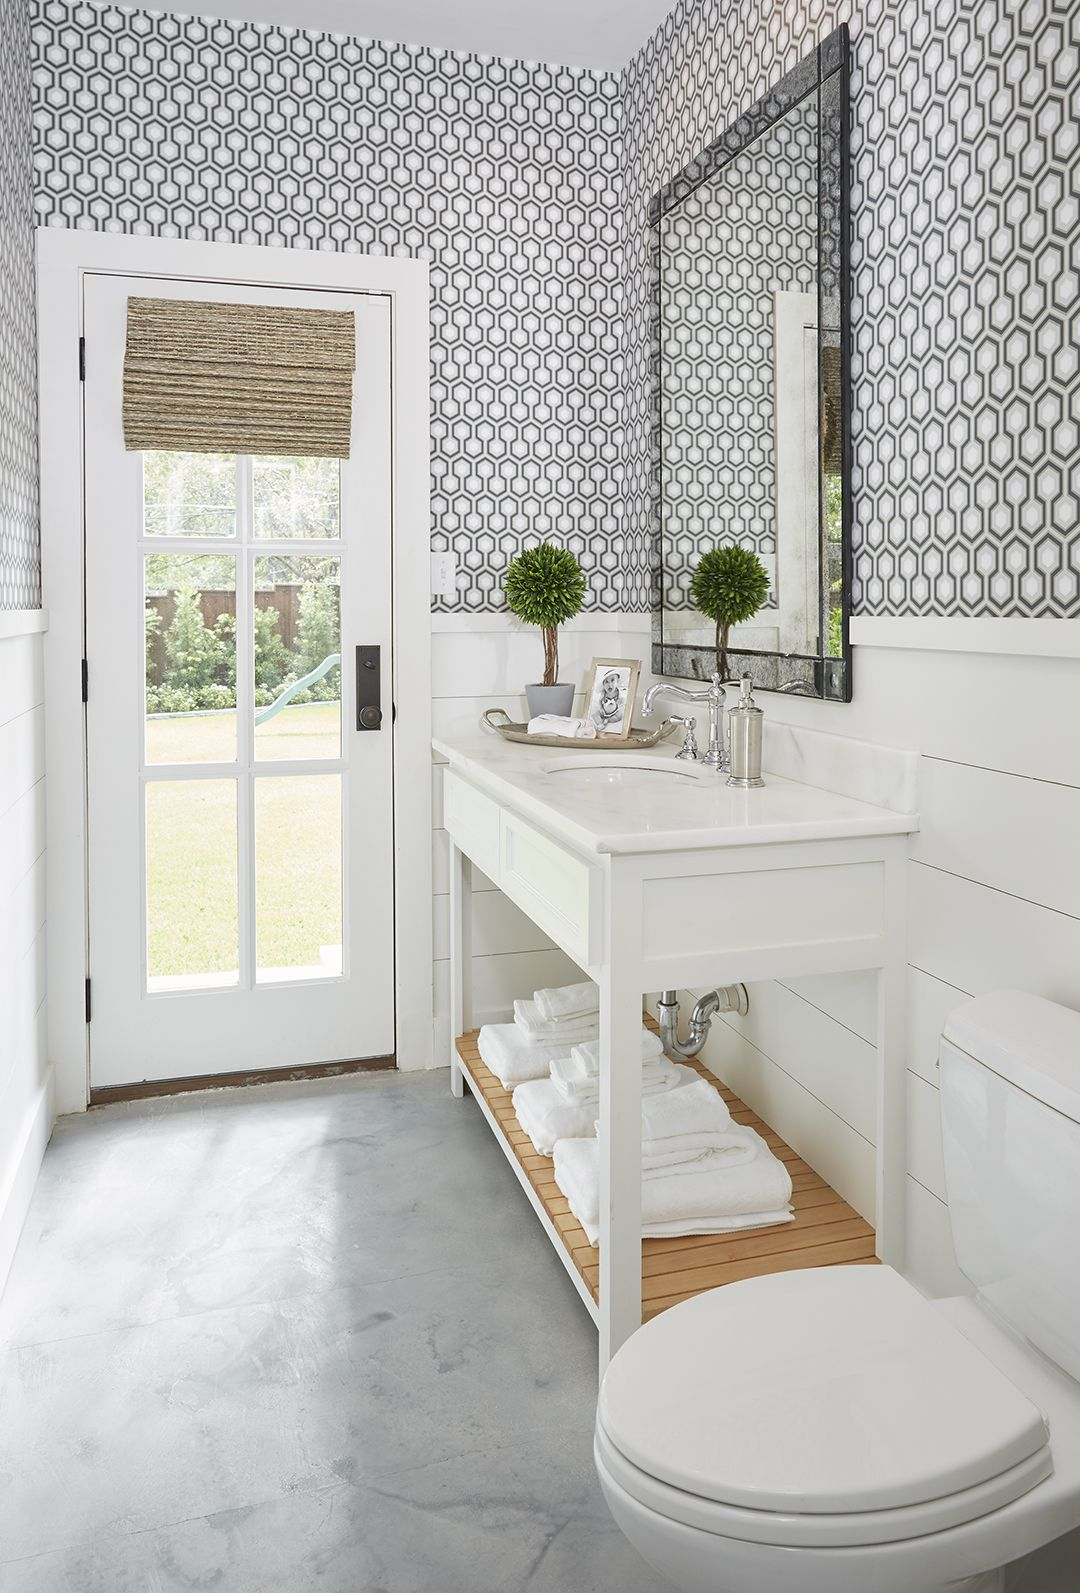 Parkford Project Guest Bathroom With Wallpaper And Shiplap By A Well Dressed Home LLC Attainable Livable Interiors